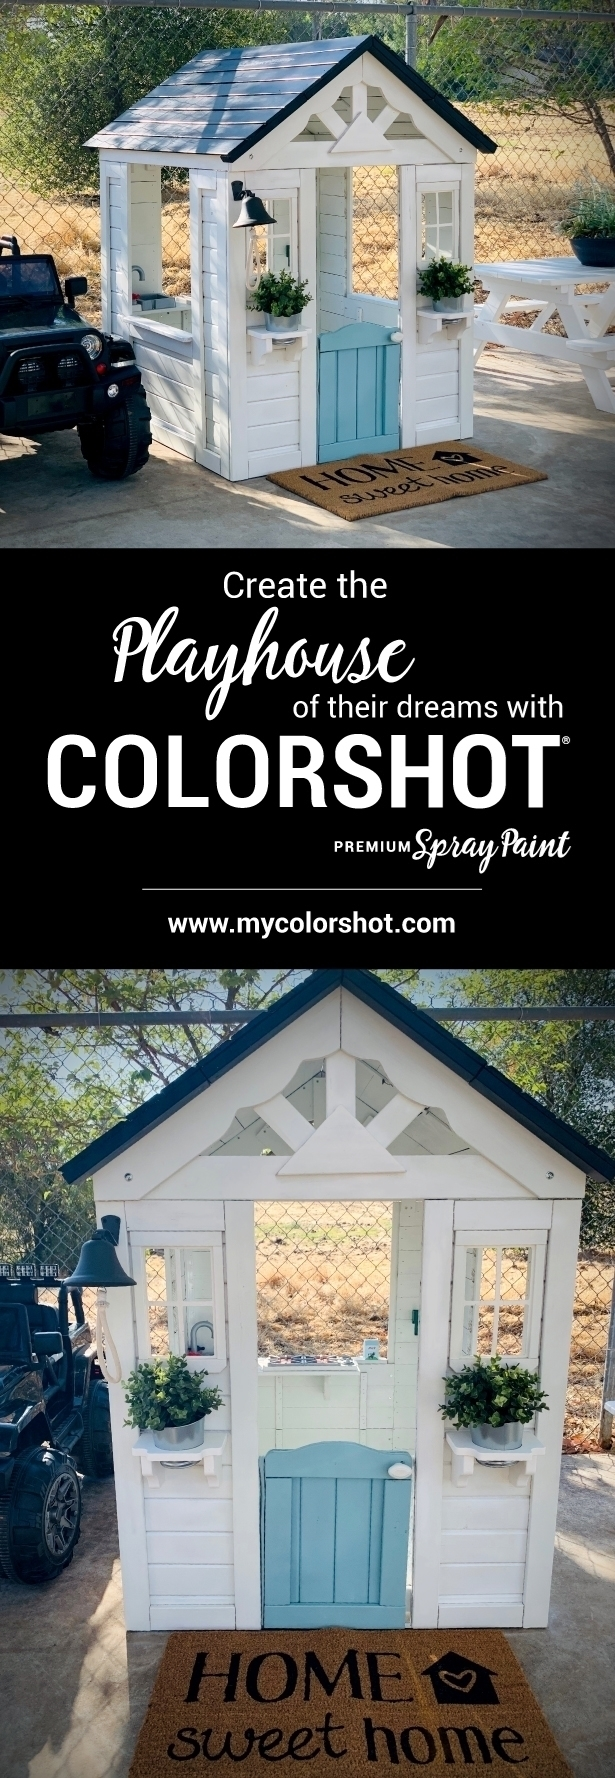 Customize Your Child's Playhouse with COLORSHOT